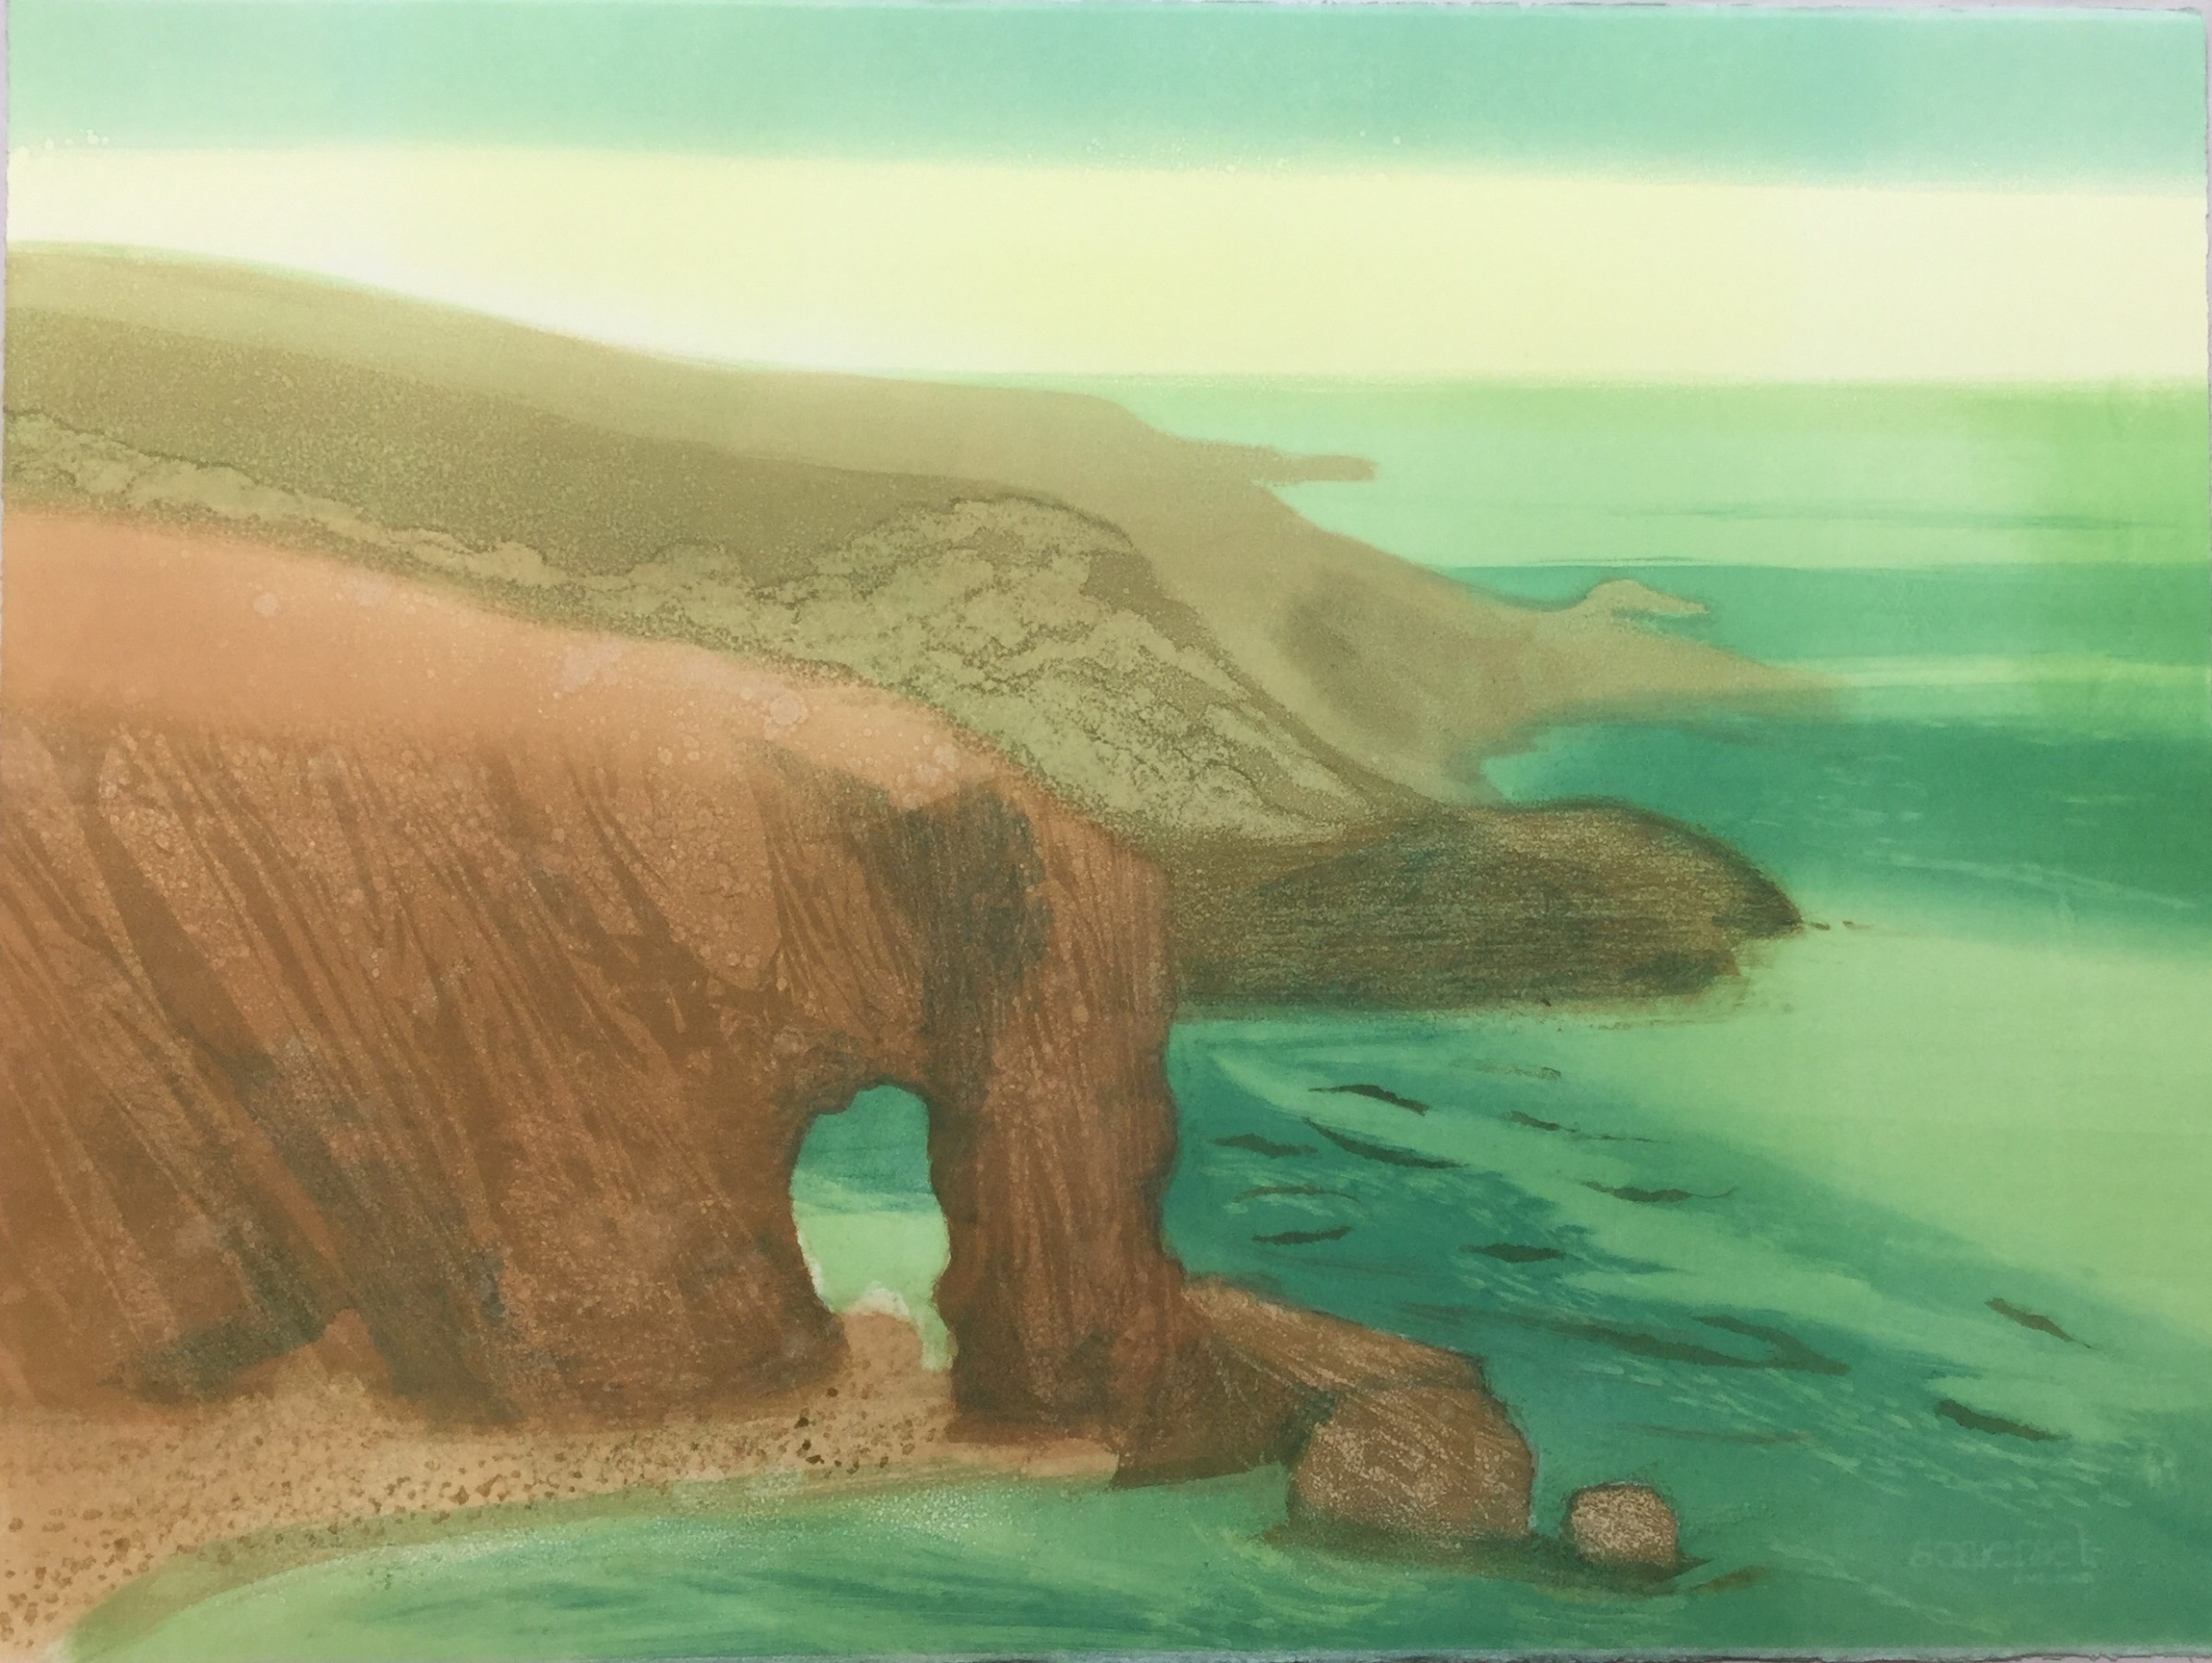 """<span class=""""link fancybox-details-link""""><a href=""""/exhibitions/17/works/image_standalone790/"""">View Detail Page</a></span><p><strong>Anne Russell</strong></p><p>Elephant Rock</p><p>monoprint</p><p>86 x 66cm</p><p>£800 framed</p>"""